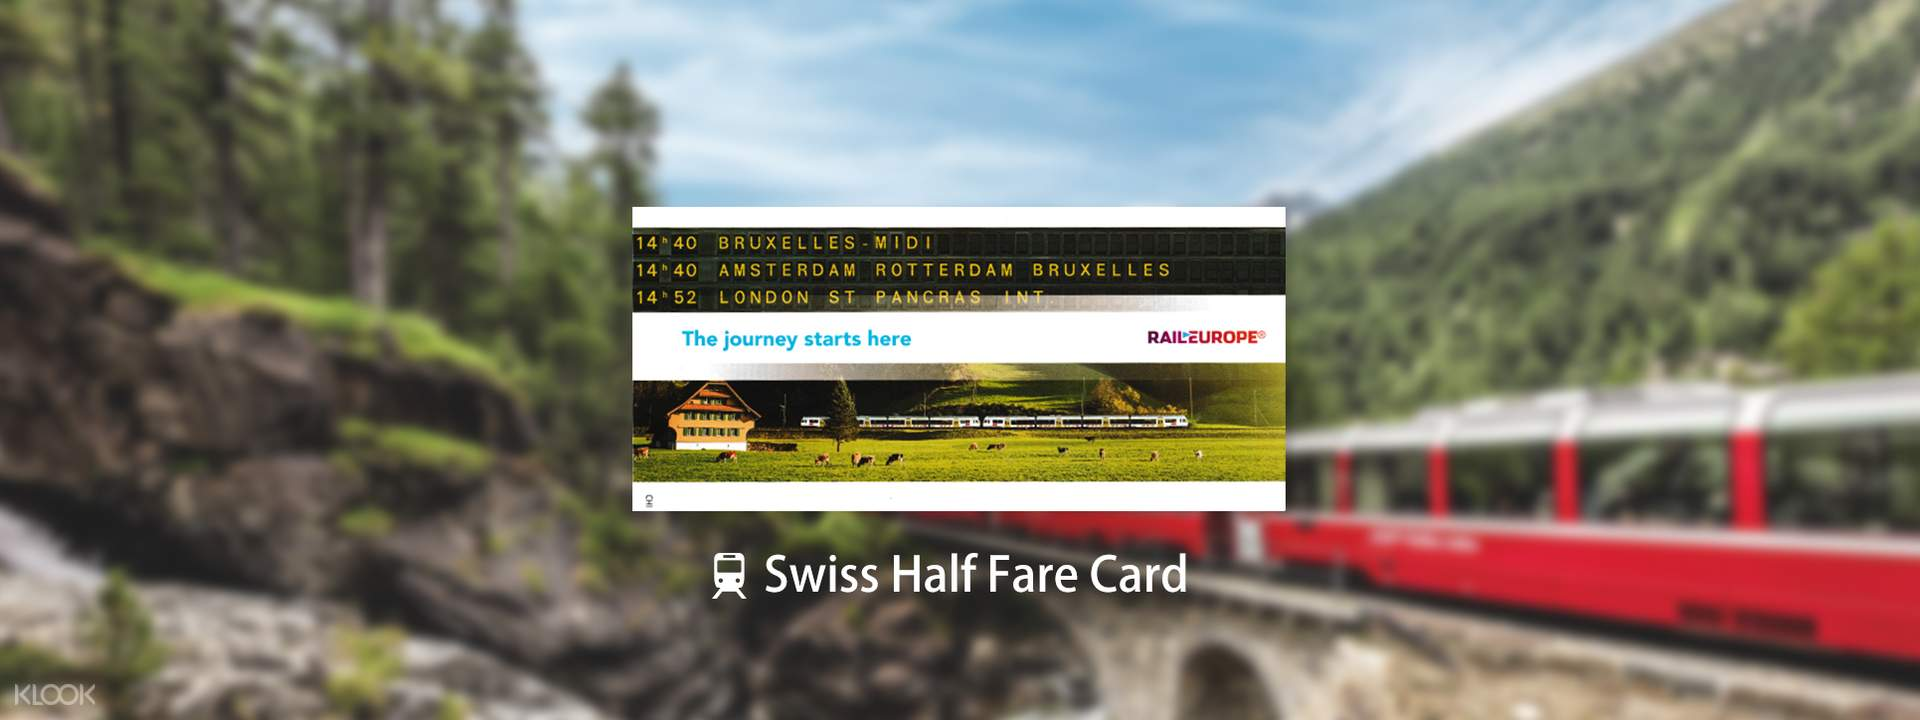 Swiss Half Fare Card in Switzerland - Klook